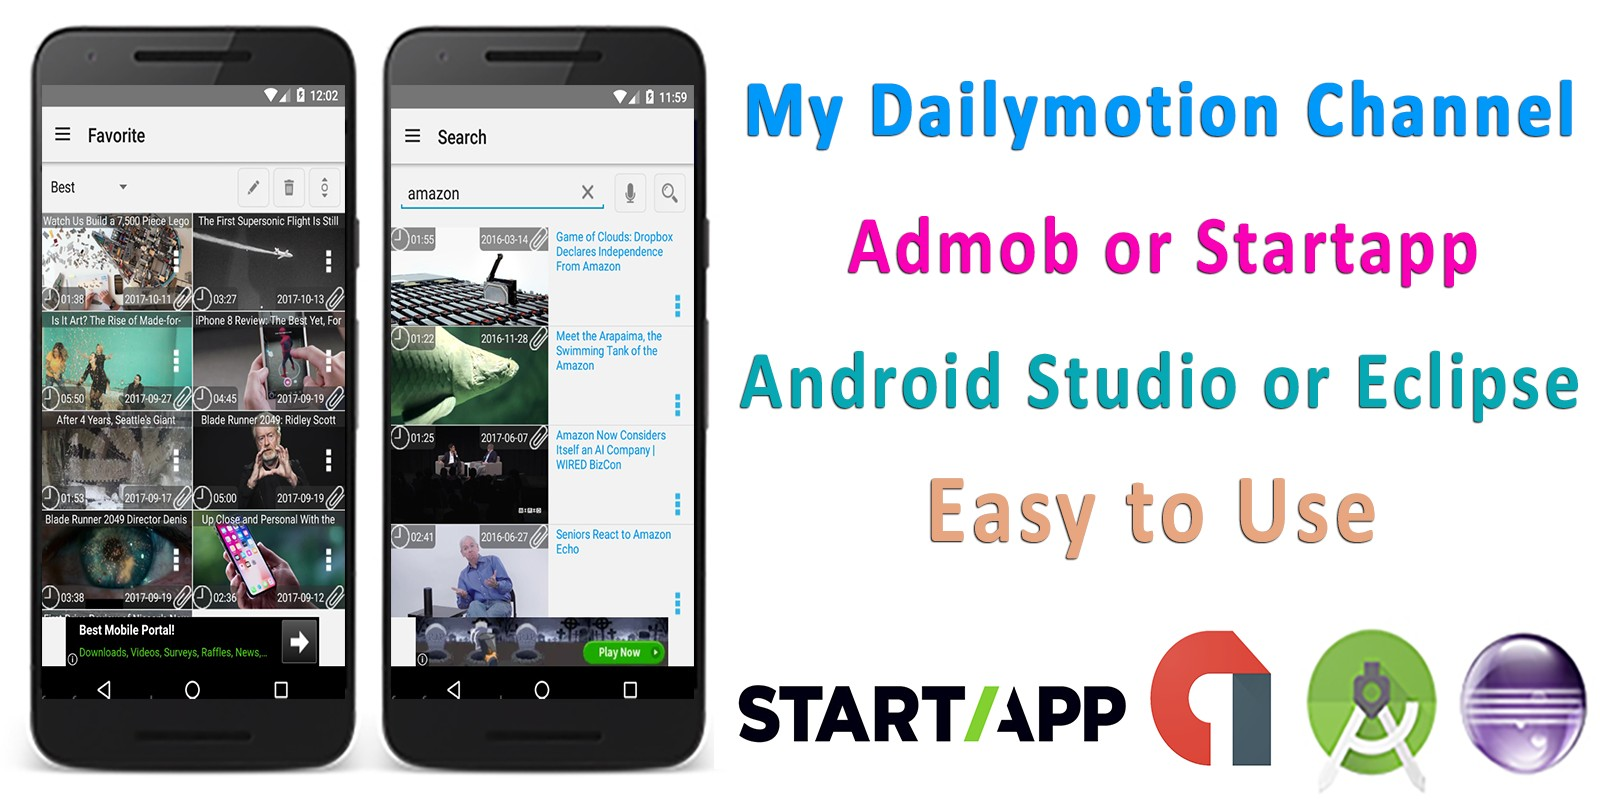 My Dailymotion Channel - Android Source Code